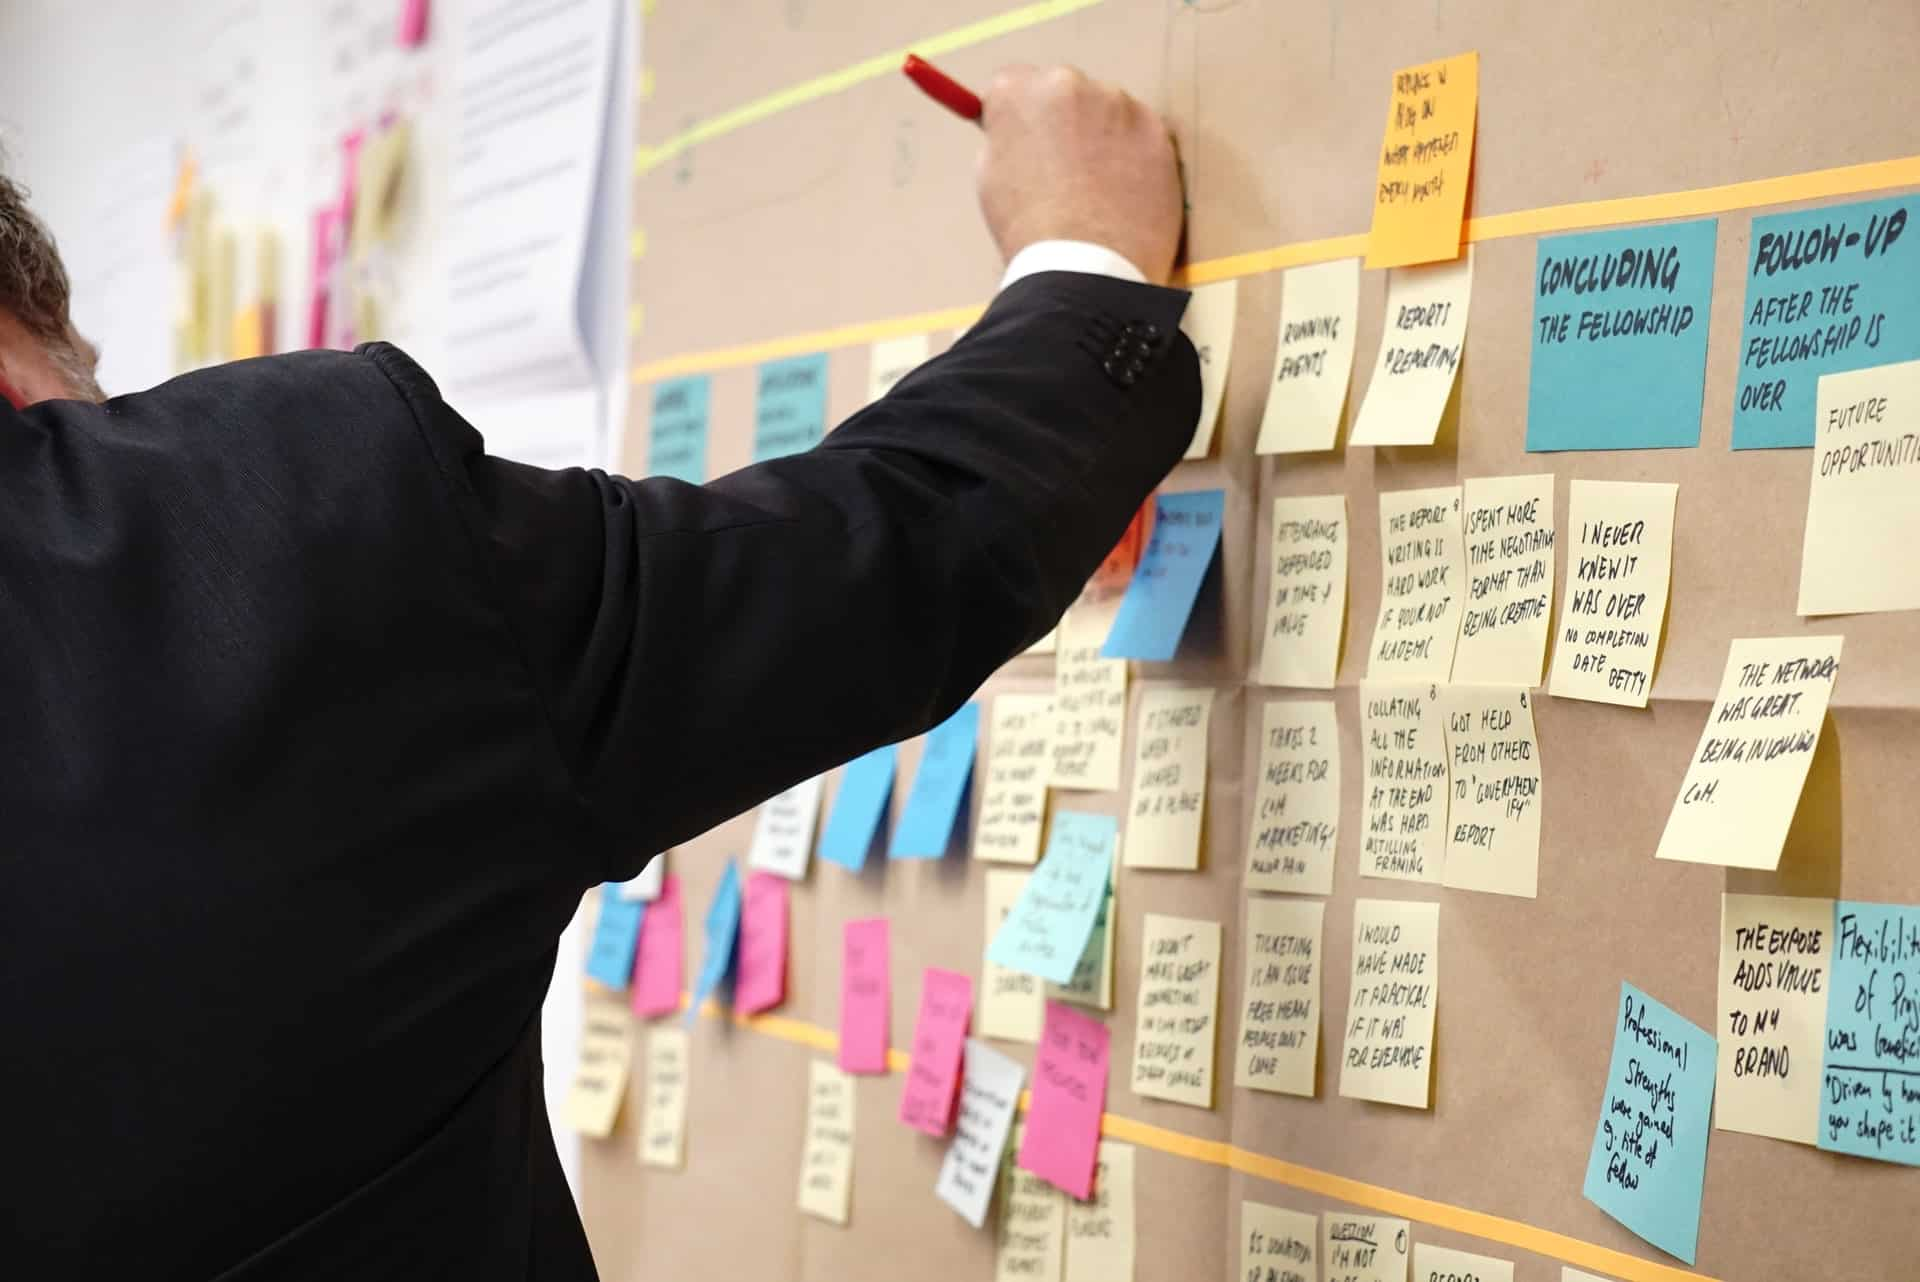 Man drawing on board with sticky notes